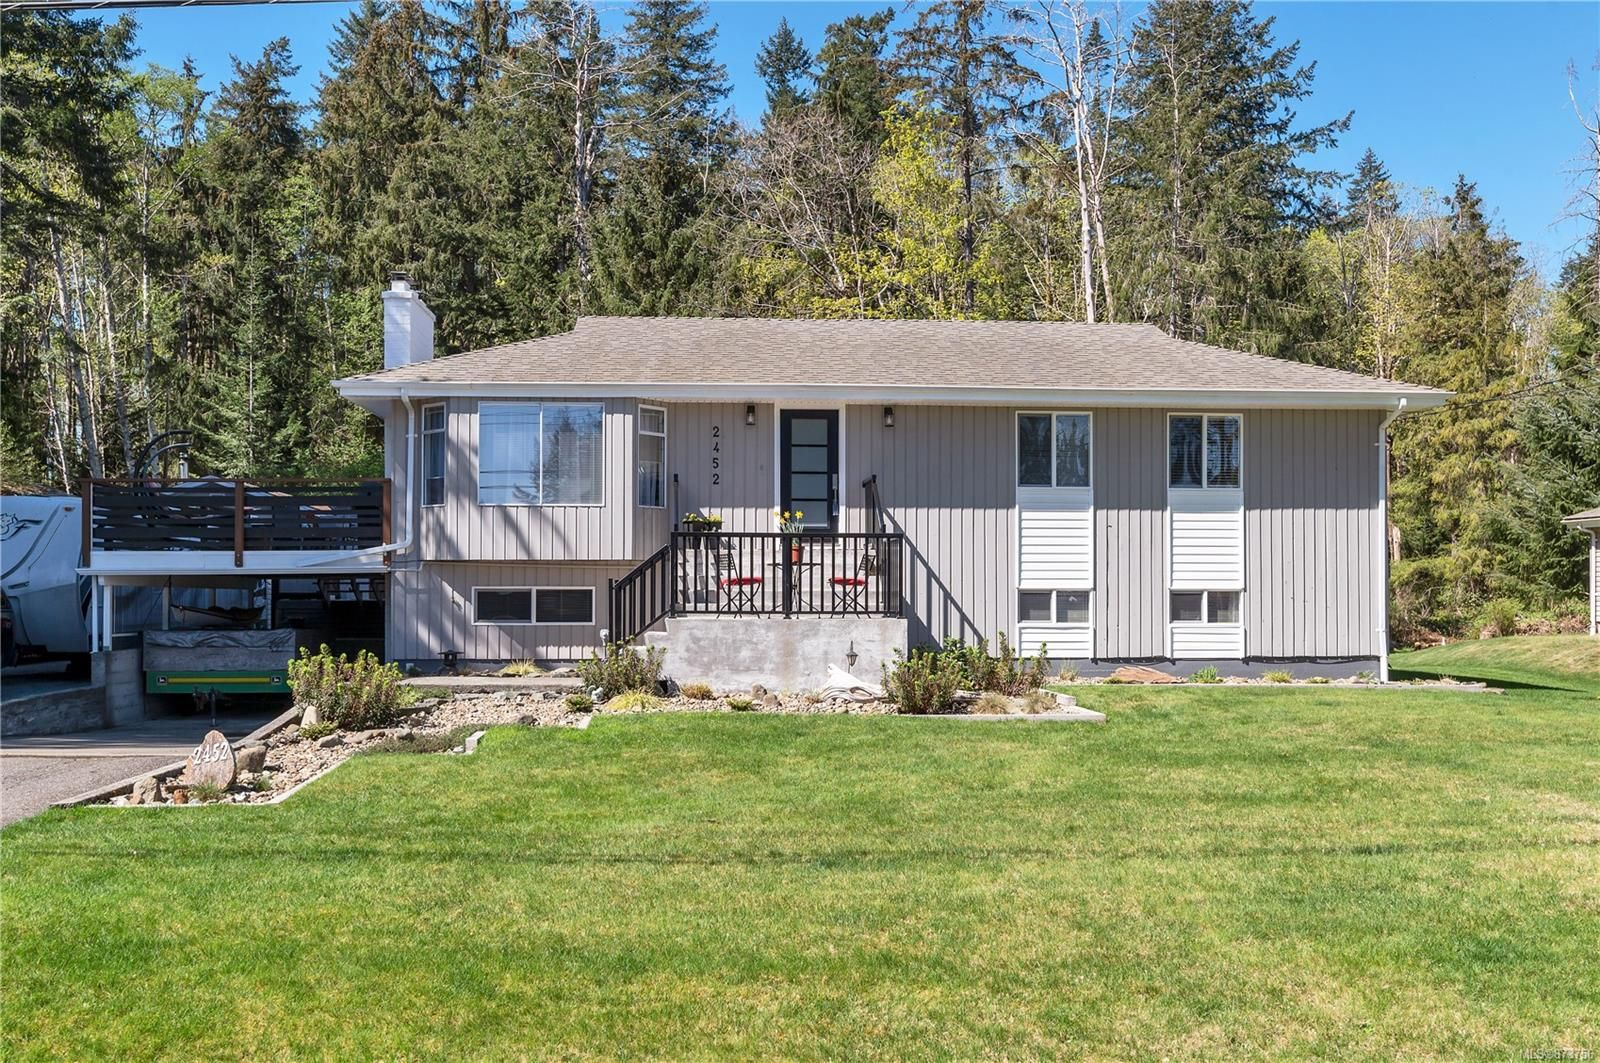 Main Photo: 2452 Dolly Varden Rd in : CR Campbell River North House for sale (Campbell River)  : MLS®# 873756